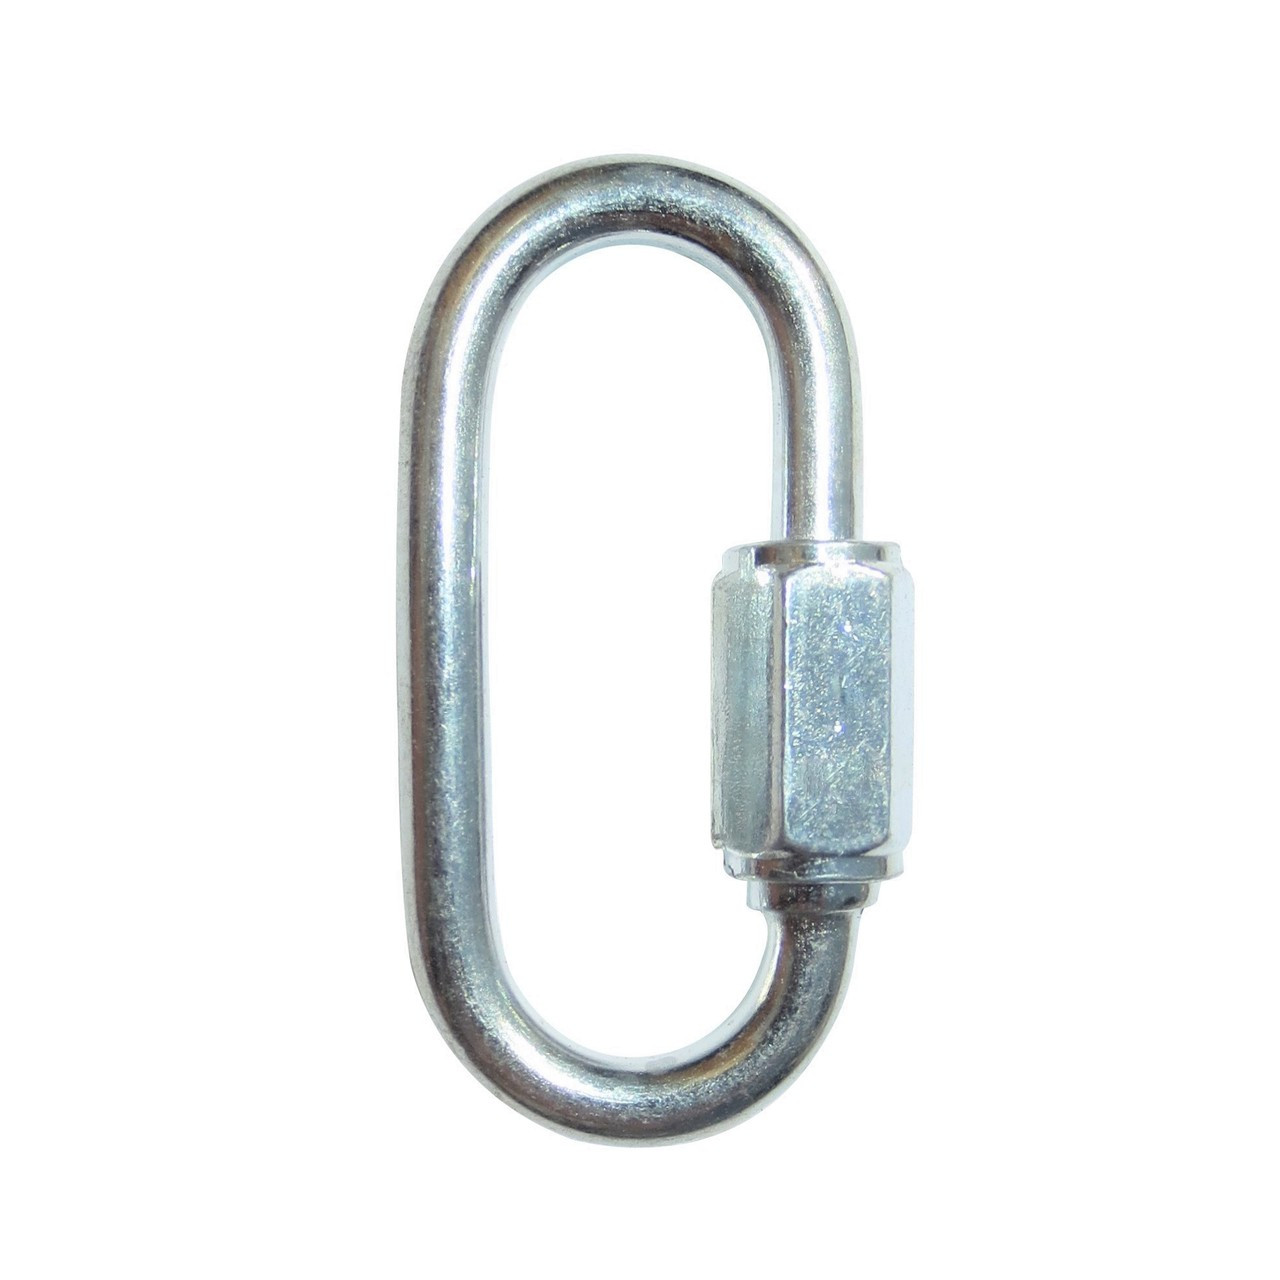 Quick Links - 8.0mm - Zinc Plated